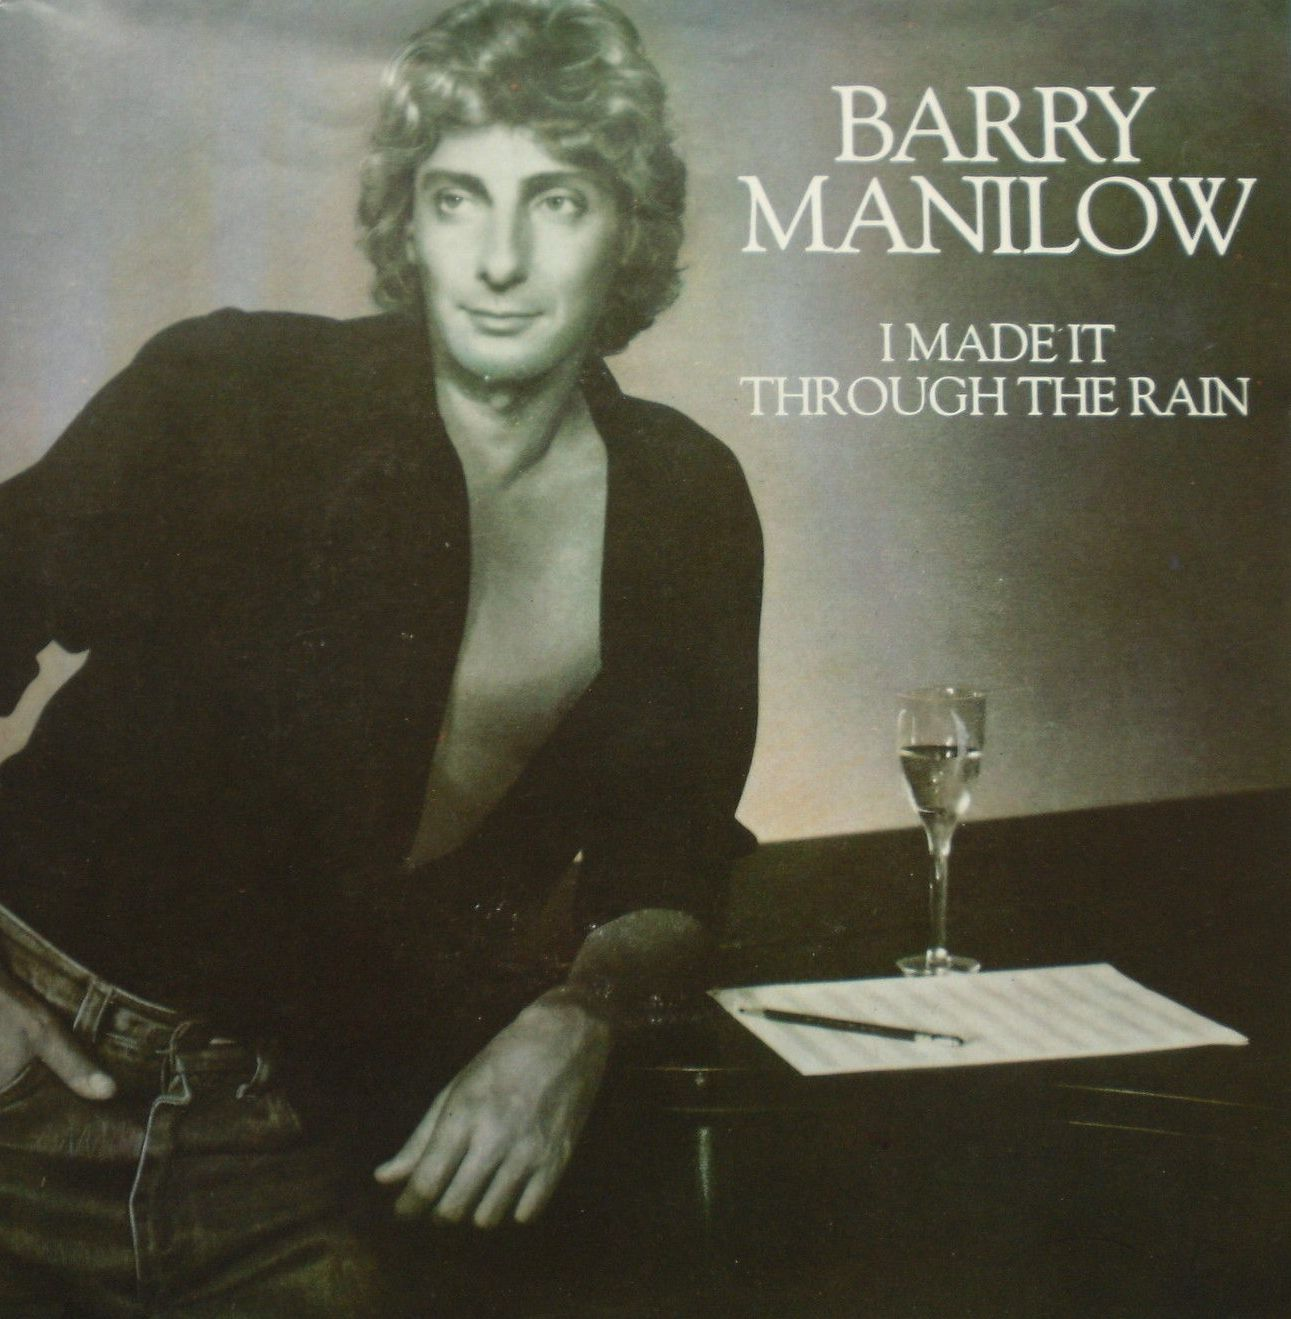 Top 10 Best Barry Manilow Songs of All Time